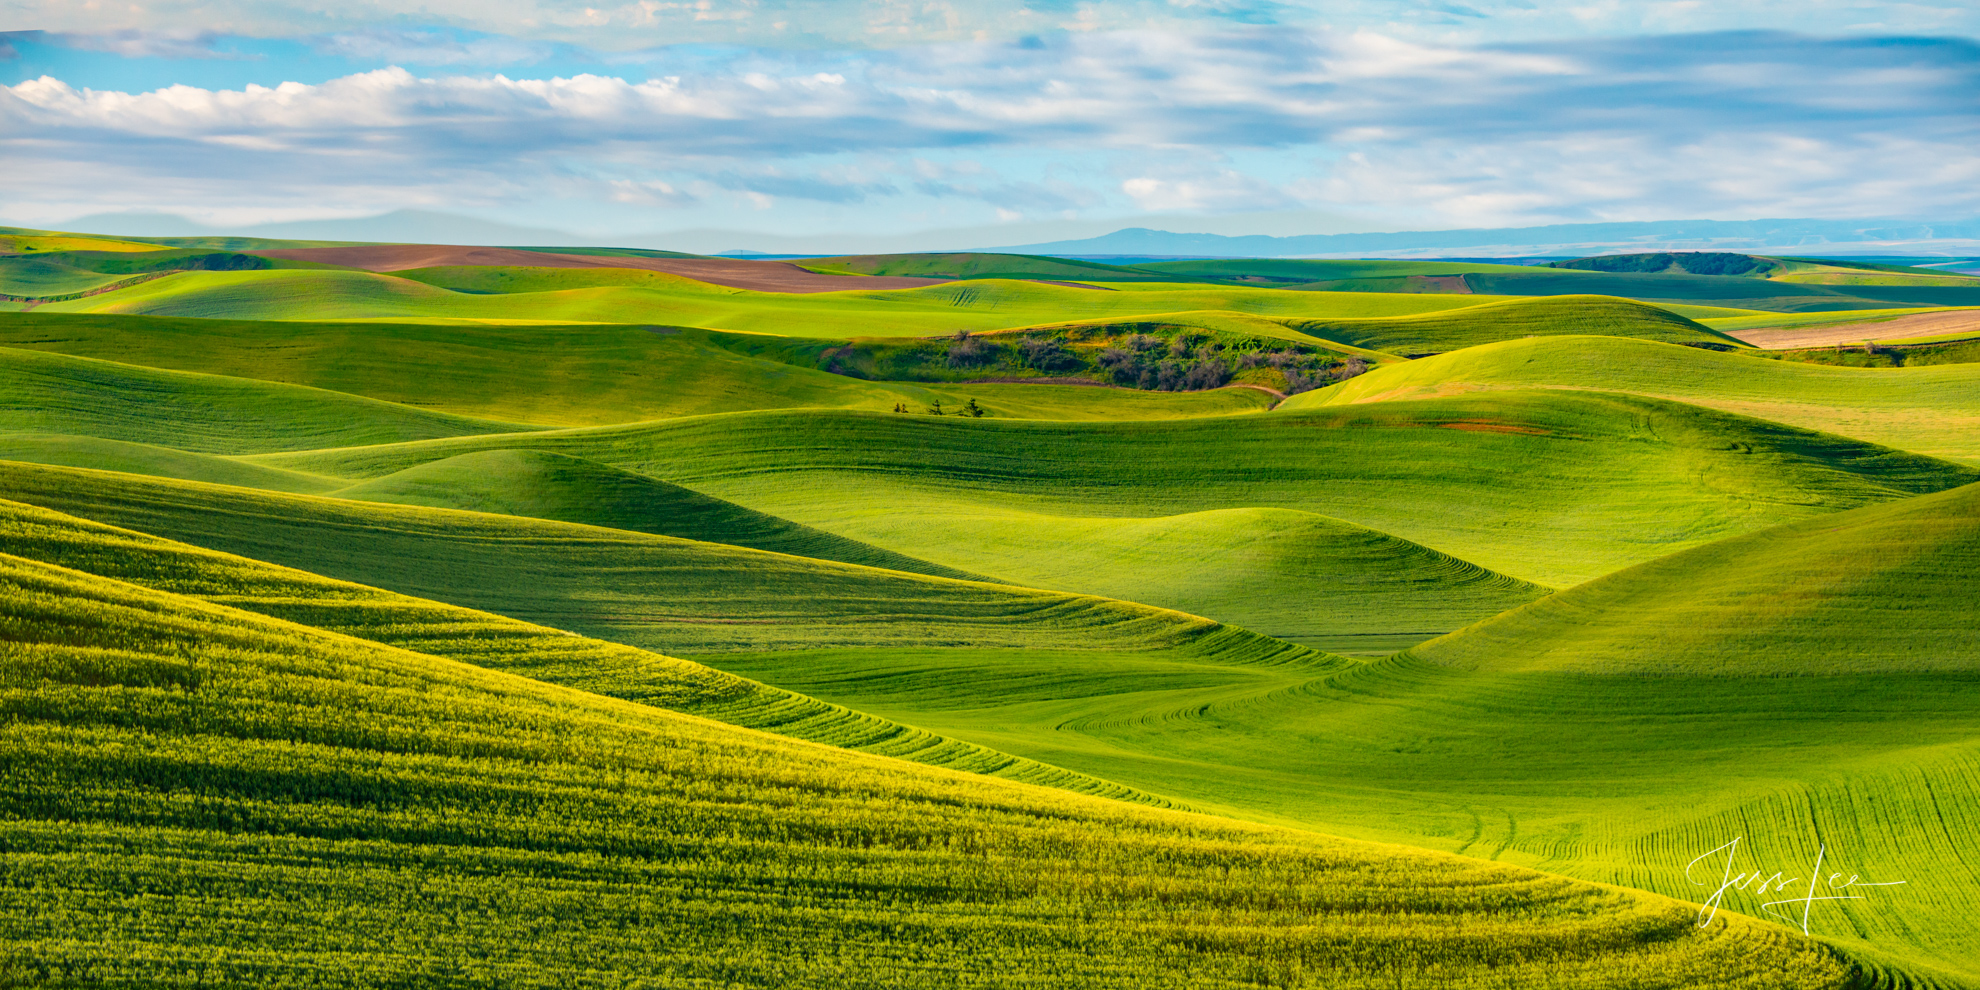 Waves of spring fields on the Palouse. Limited edition of 200 fine art prints.